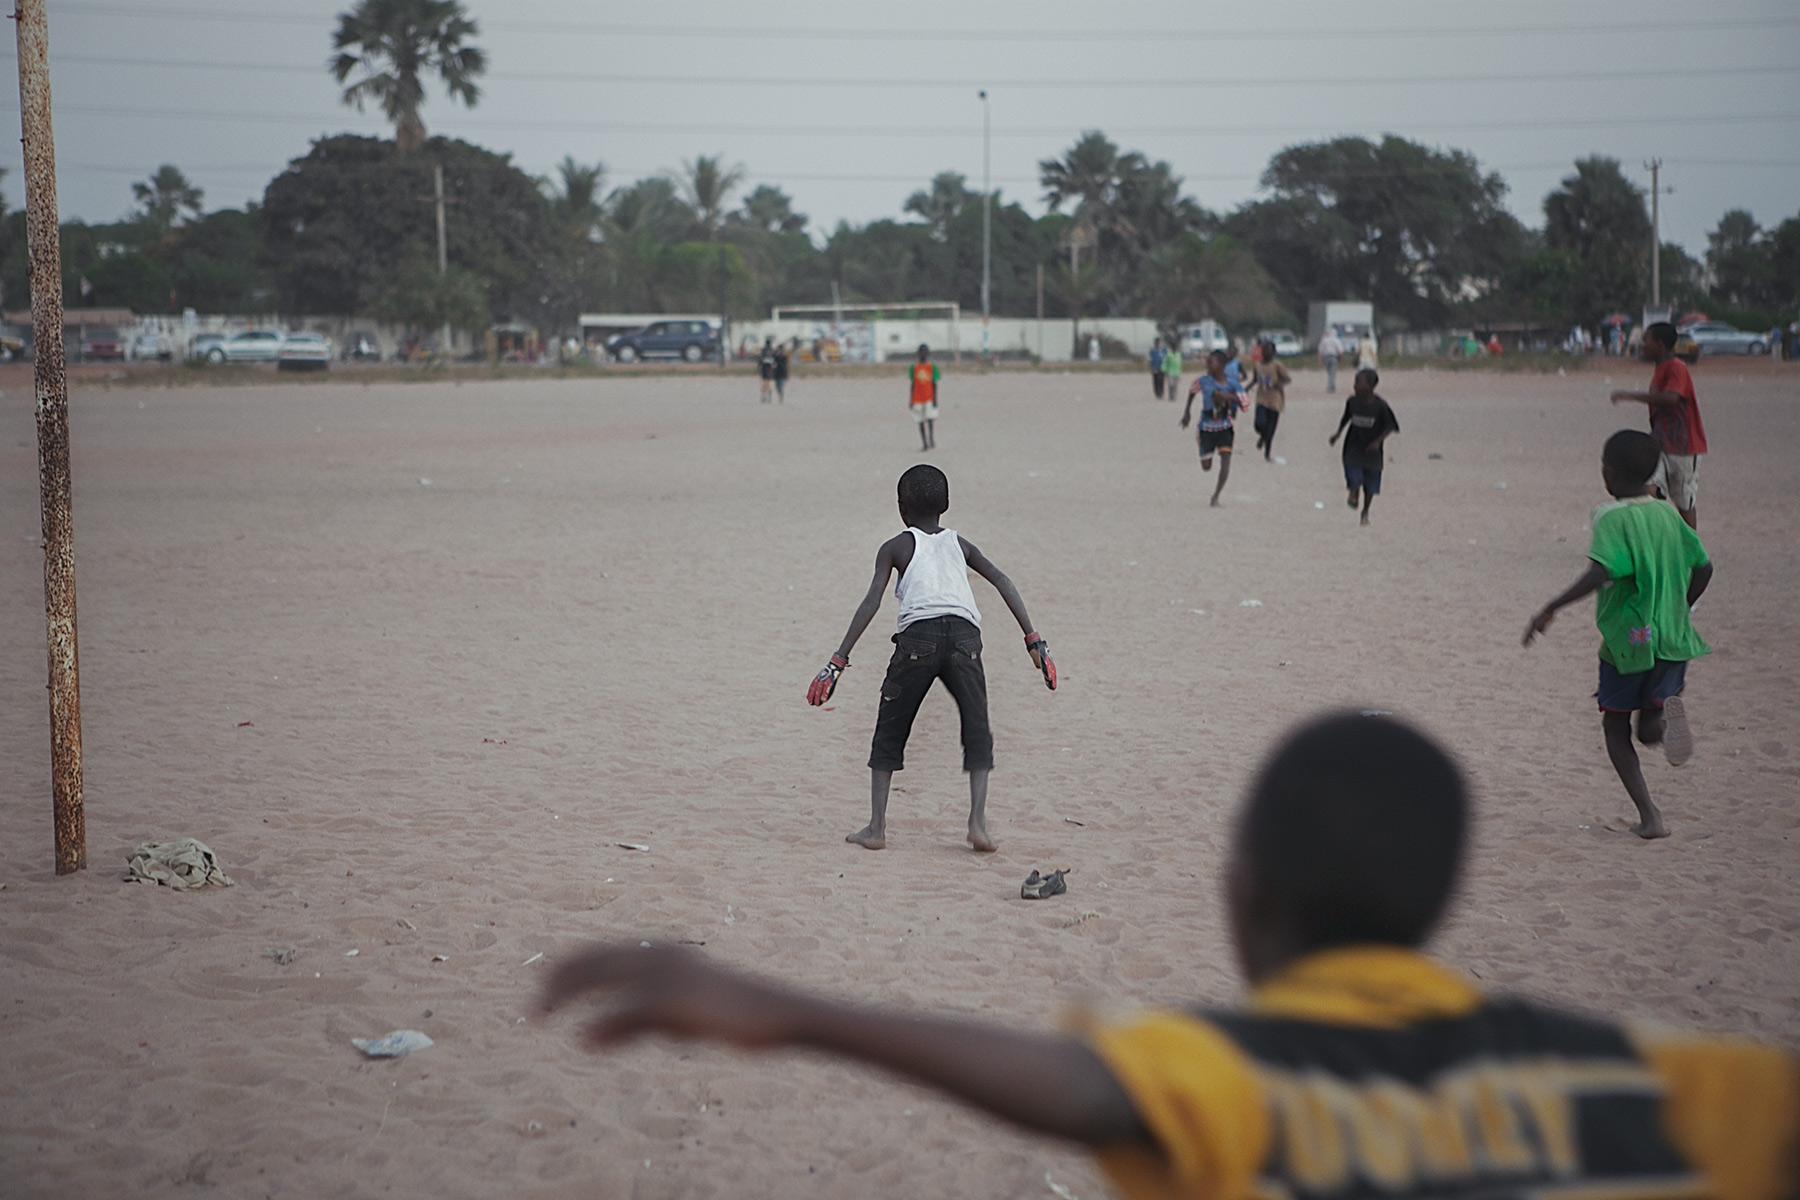 Good Boy Wolf Photographer, Gambia, west Africa, young boys running with a football